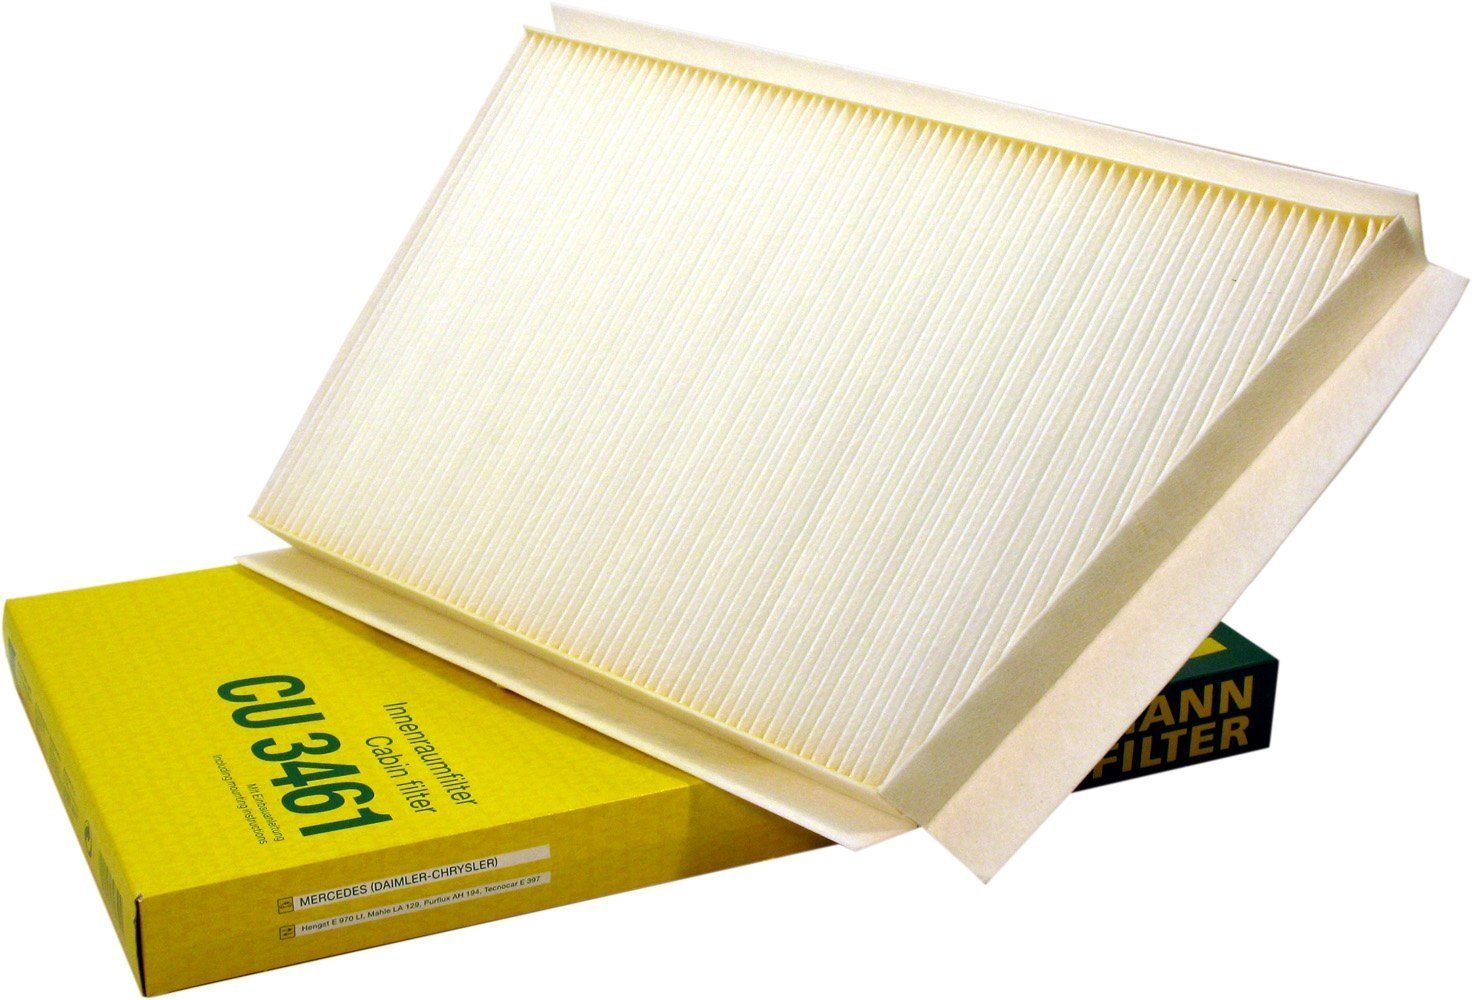 New Cabin Air Filter Fits For 17-18 F250 Super Duty 15-18 Ford F150 FL3Z19N619A